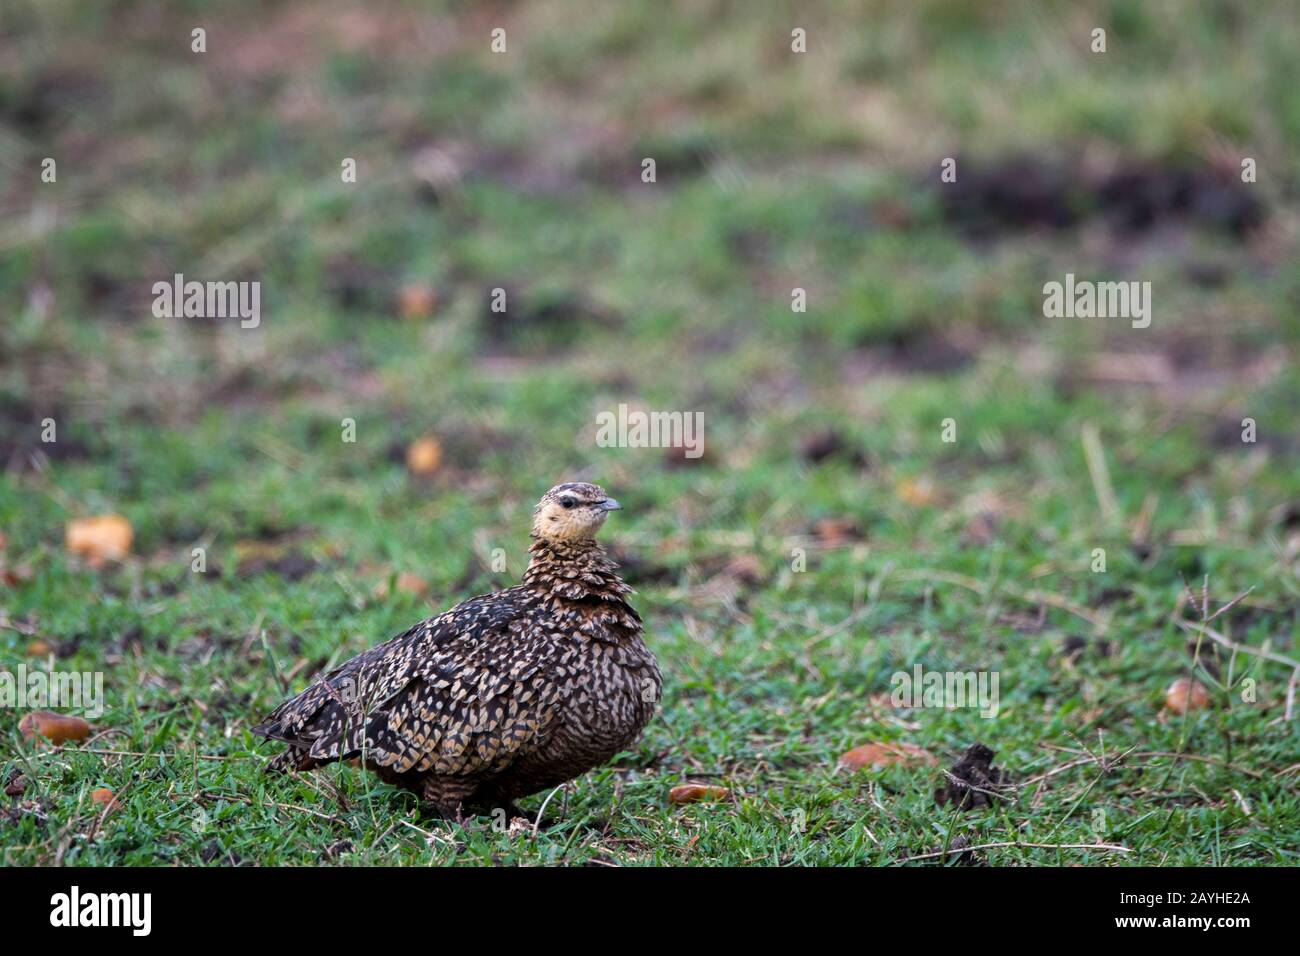 A female yellow-throated sandgrouse (Pterocles gutturalis) in the grasslands of the Masai Mara National Reserve in Kenya. Stock Photo